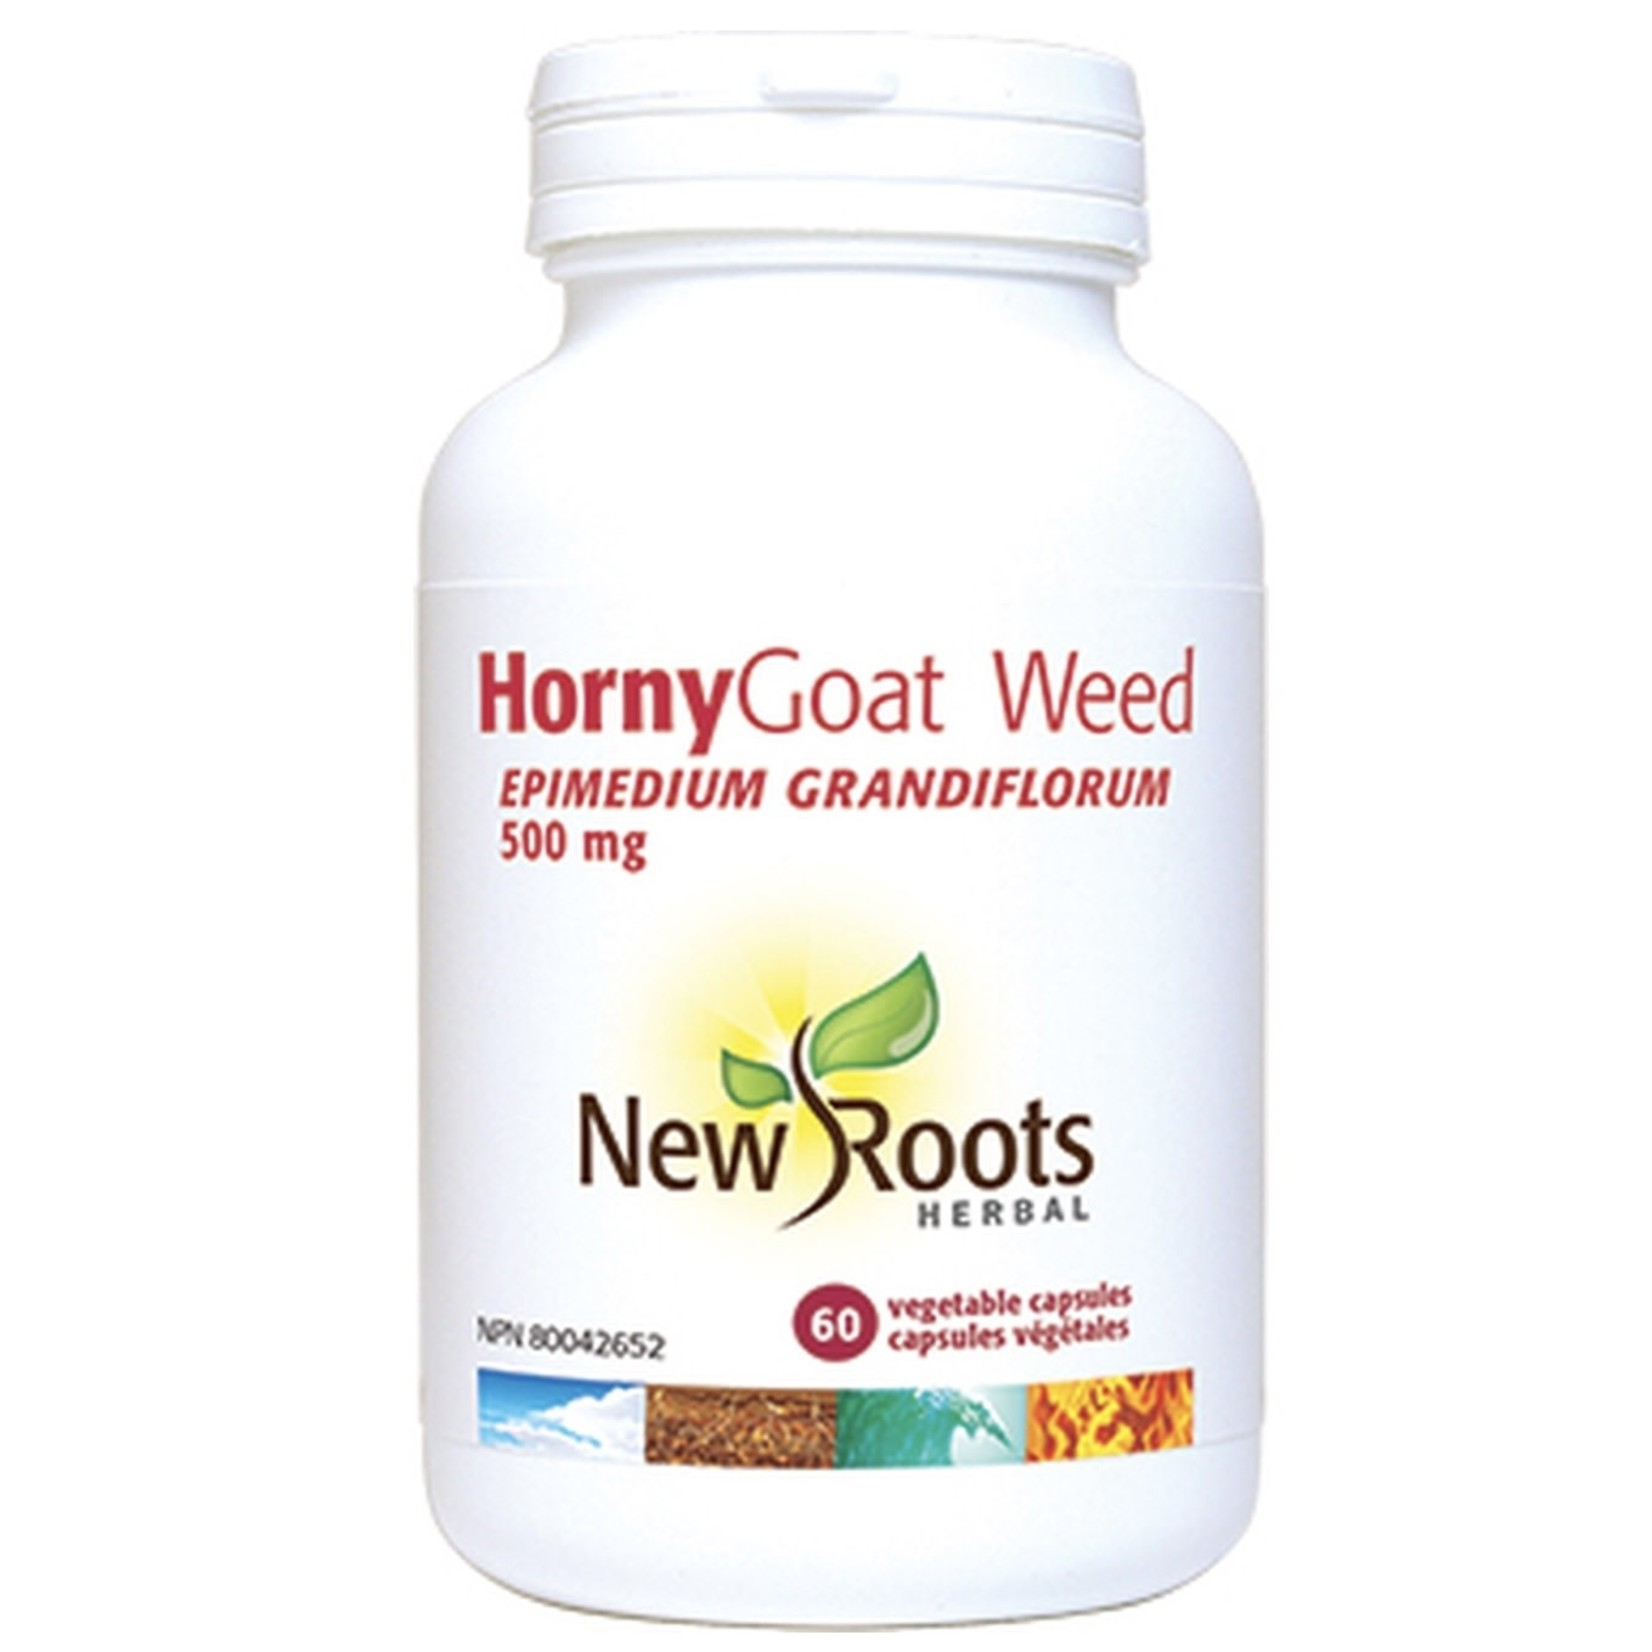 New Roots New Roots Horny Goat Weed 60 500 mg 60 caps